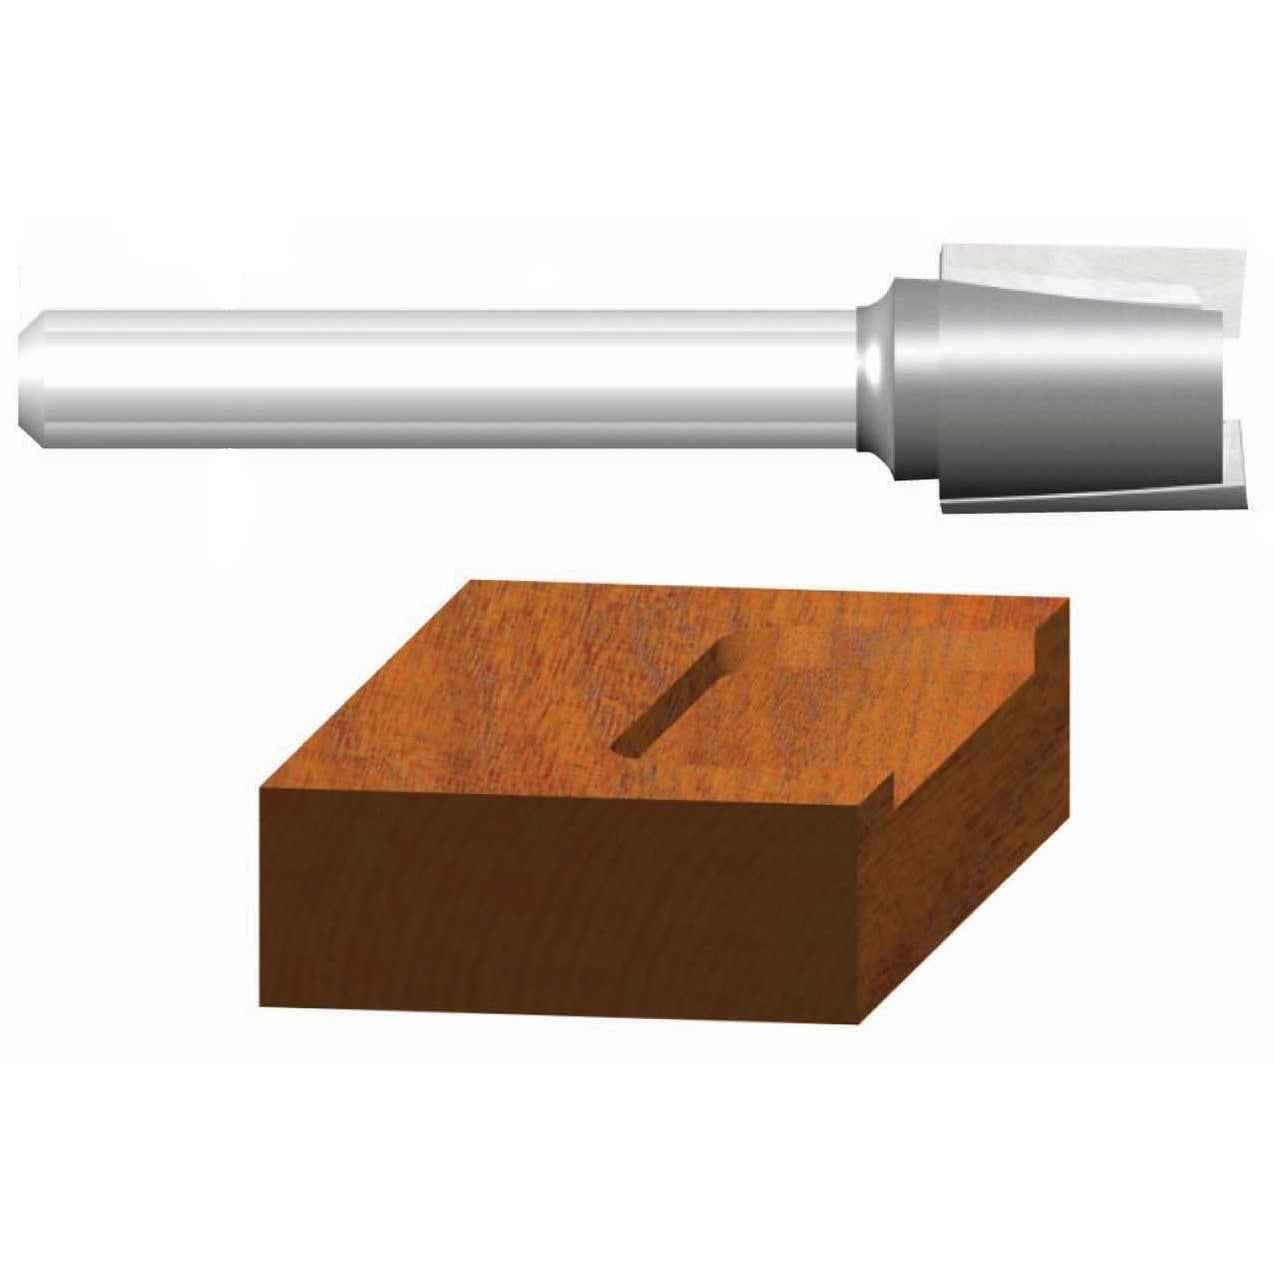 Vermont American 23111 .625-inch Mortising Bit (Power too...